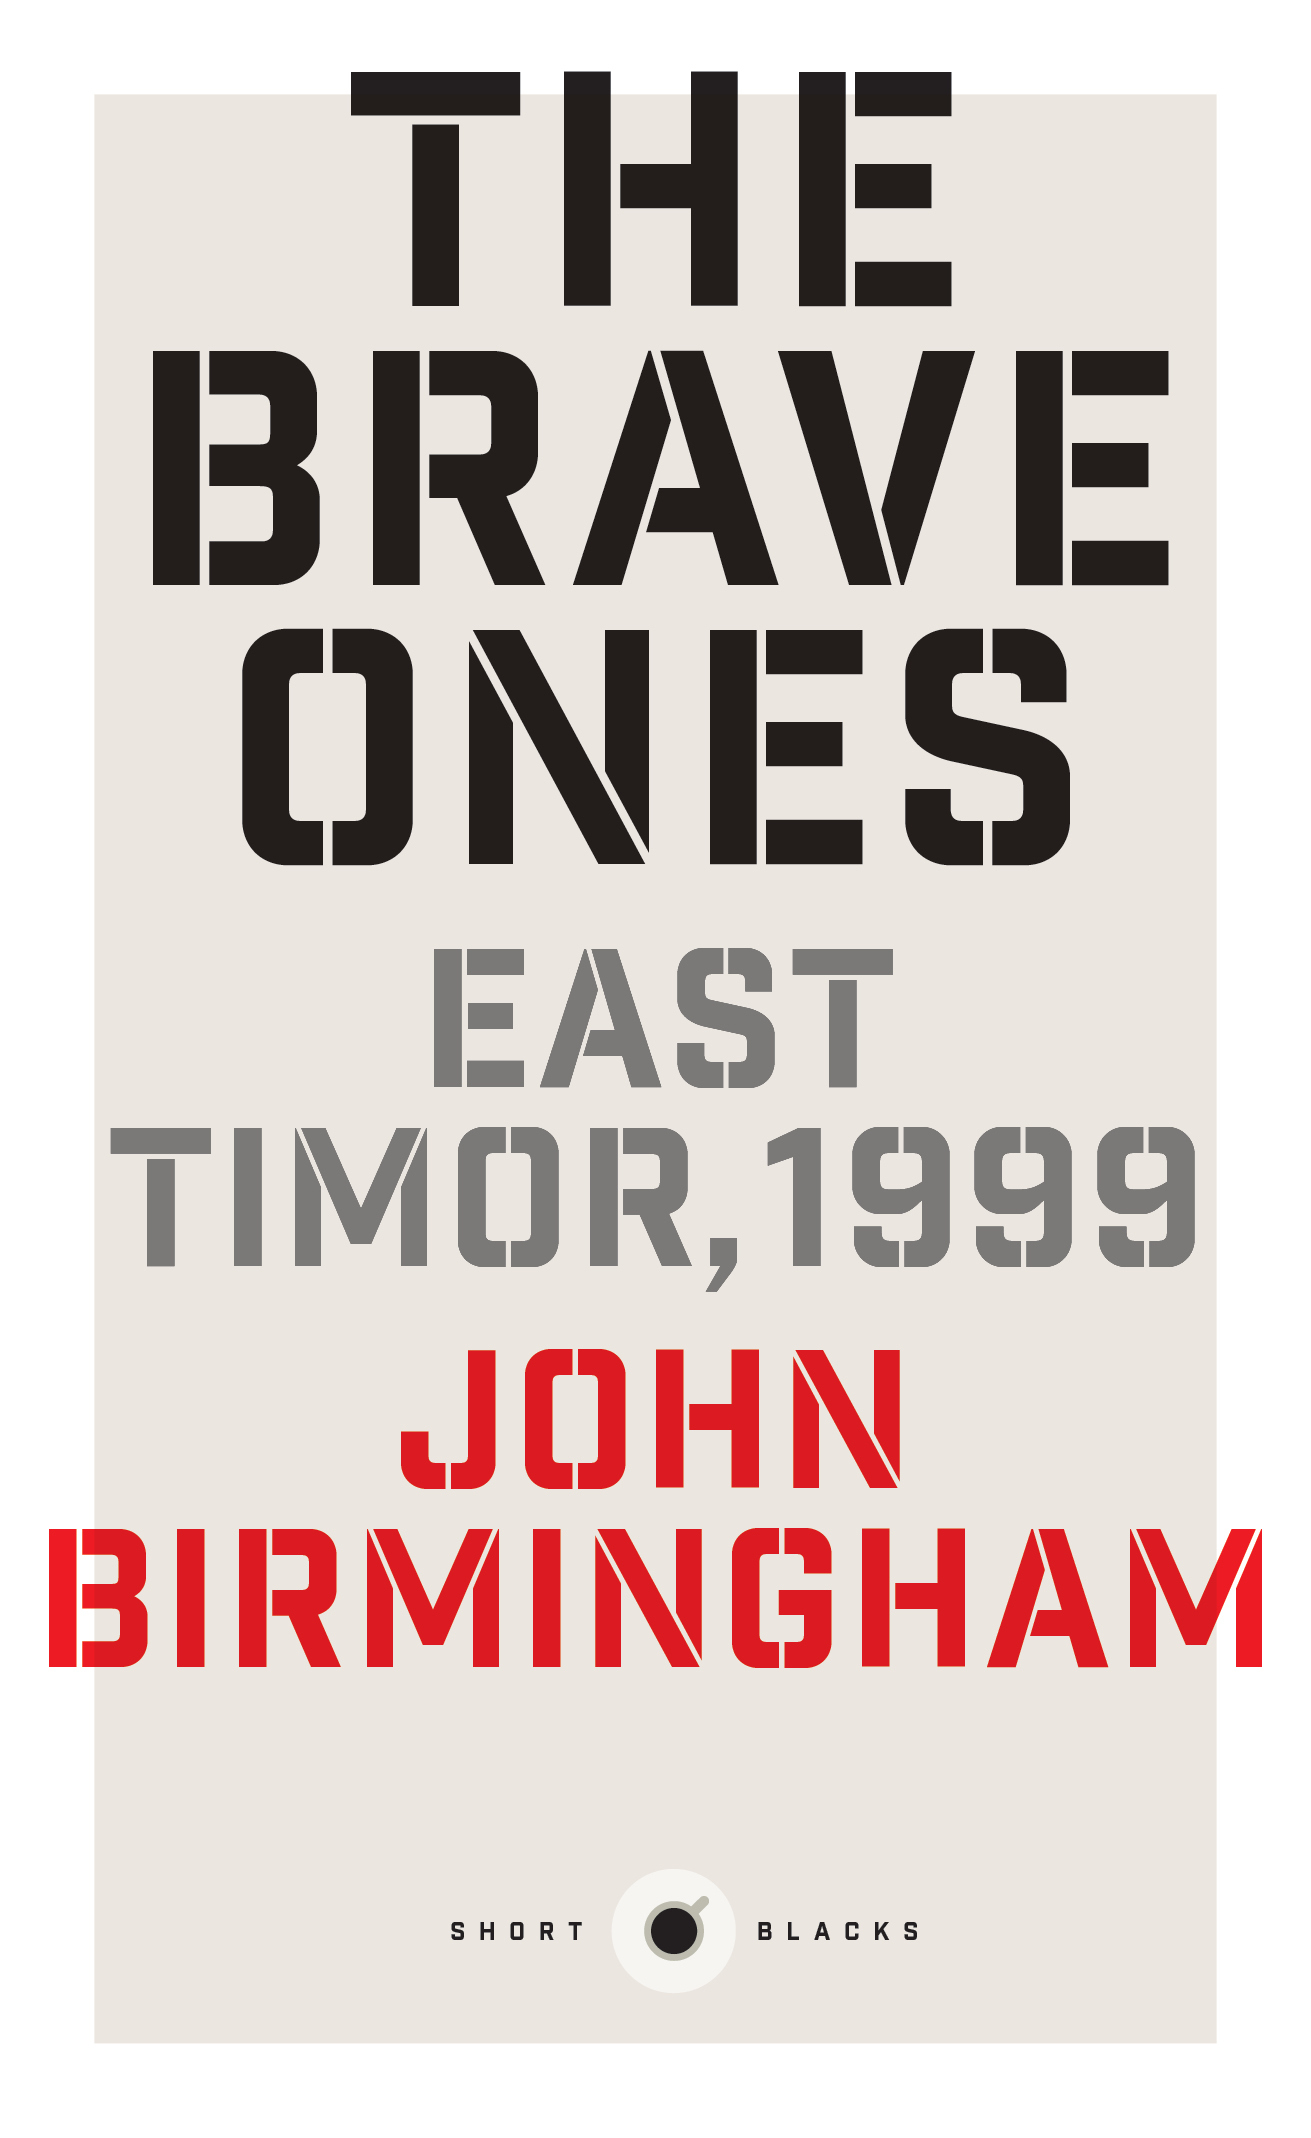 The Brave Ones East Timor, 1999